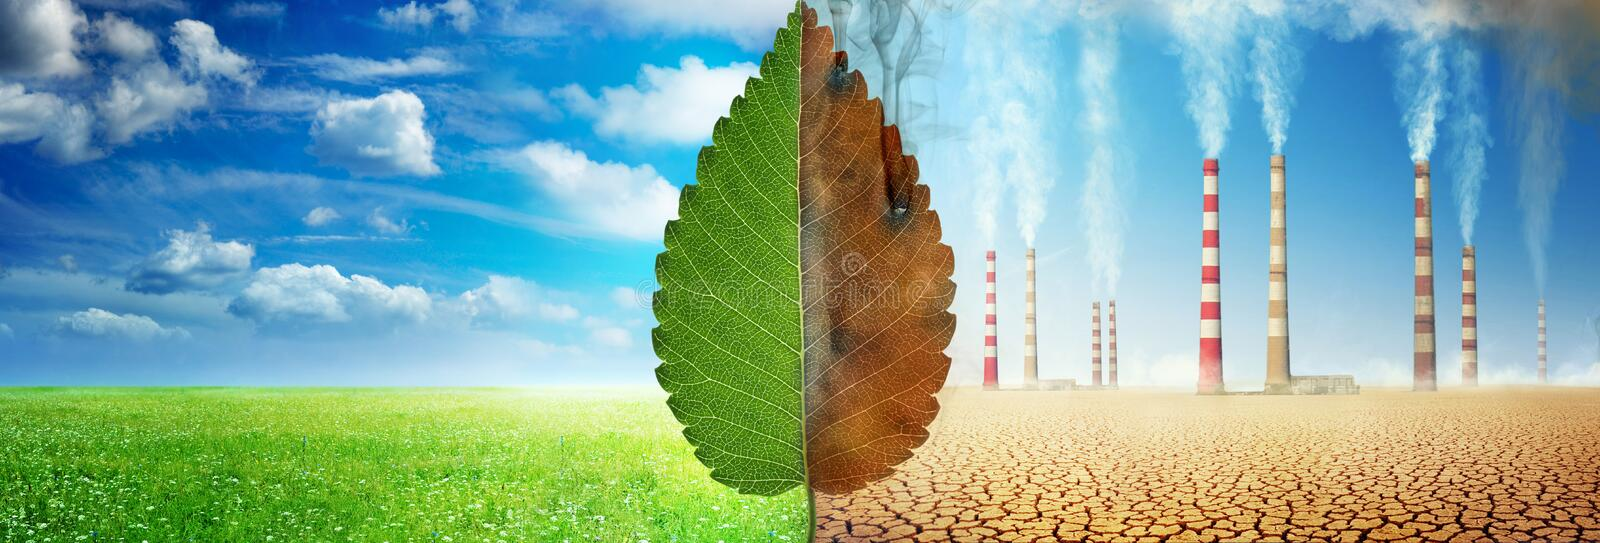 A tree leaf on a background of grass and clouds versus a withered leaf on a background of a dead desert with Smoking chimneys of stock photos